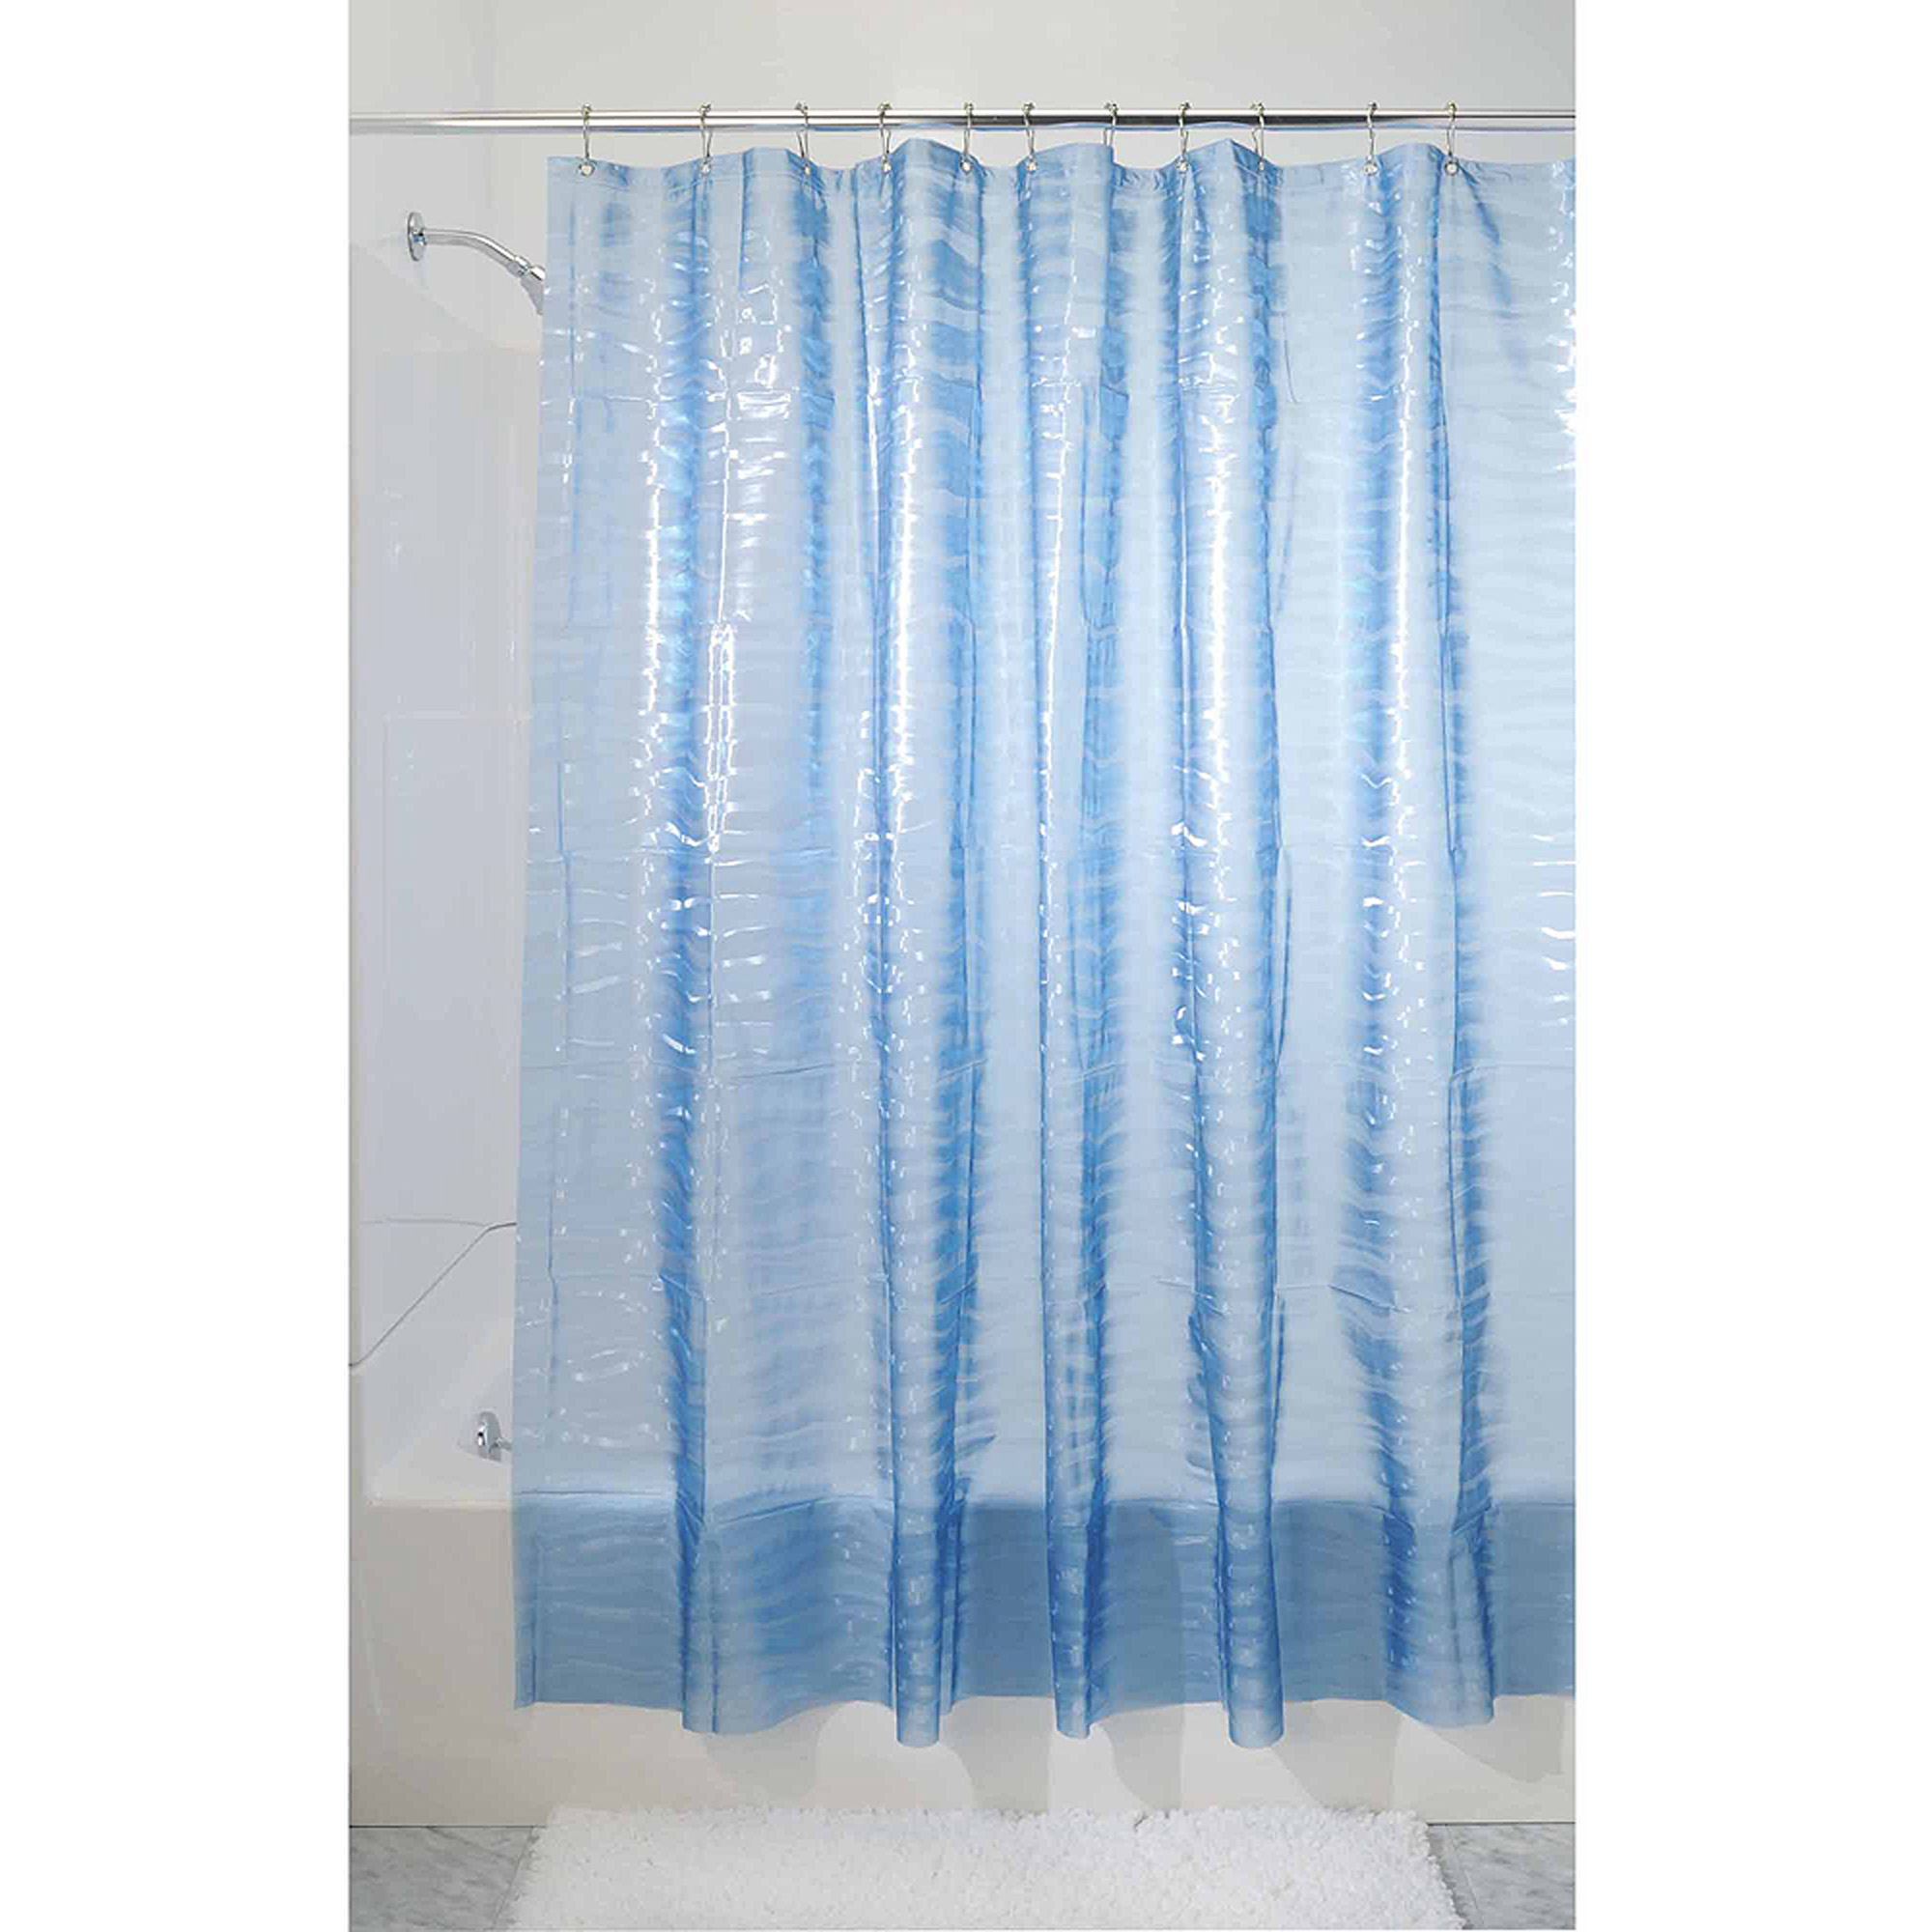 InterDesign Ripplz EVA Shower Curtain